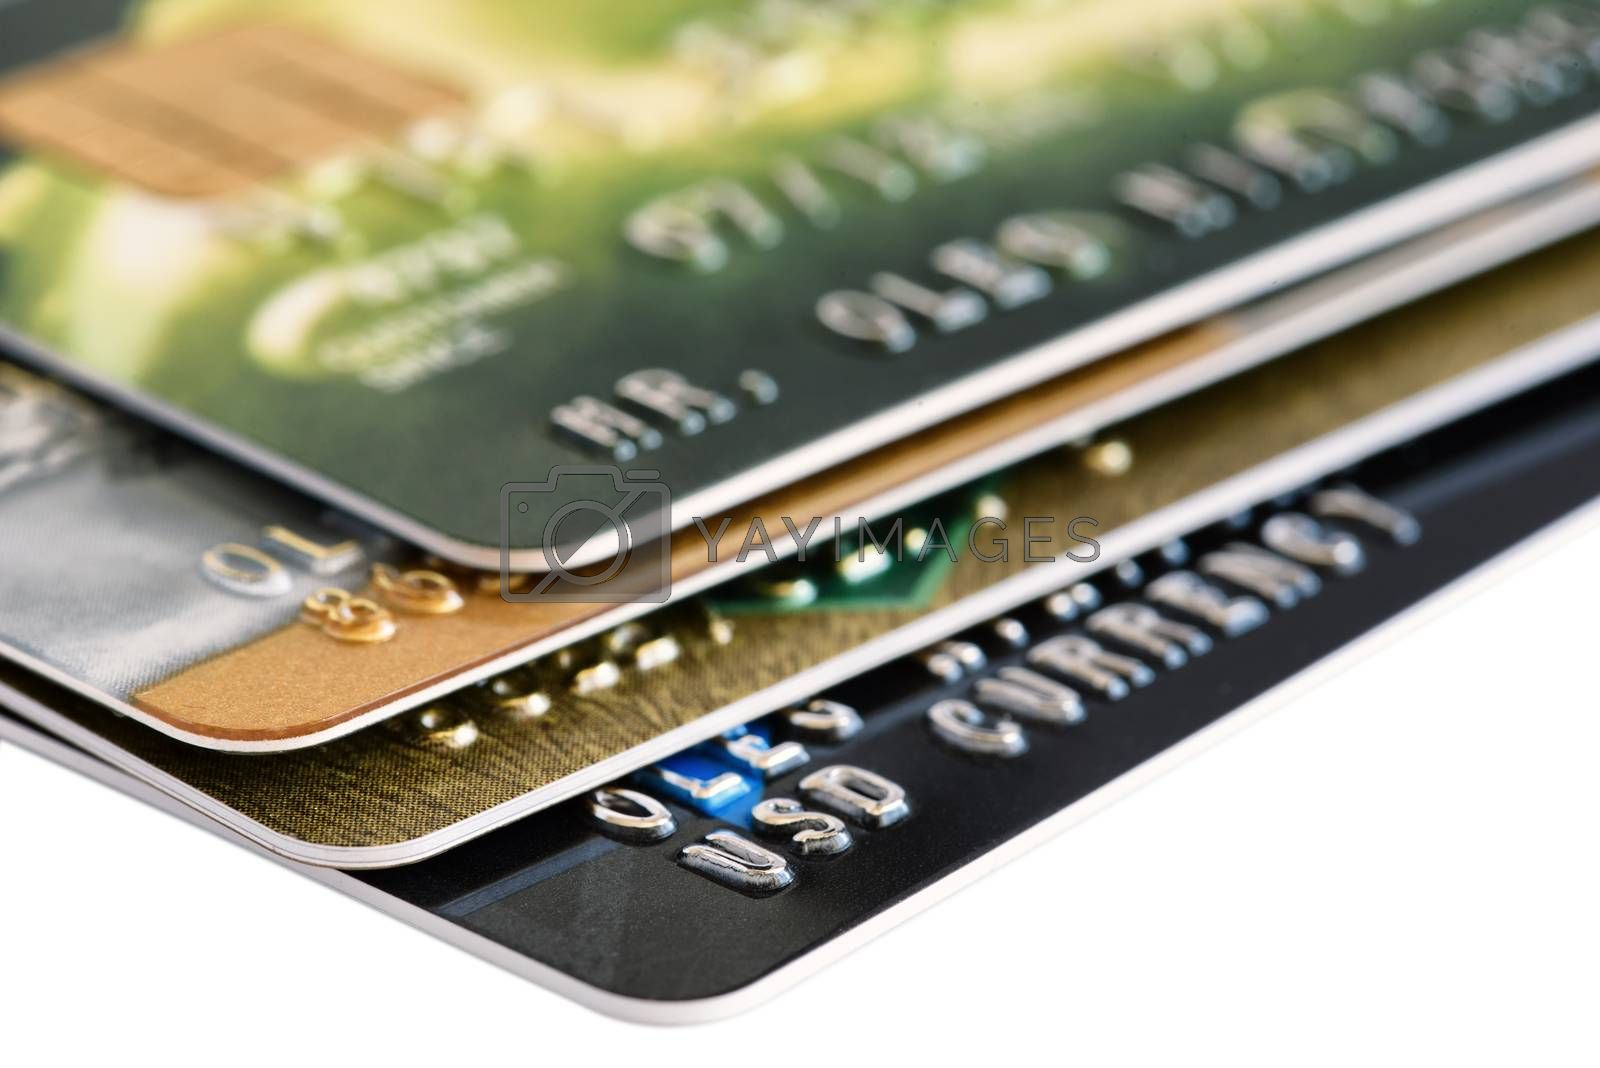 Credit card close-up. Plastic card for payments. Credit card isolated